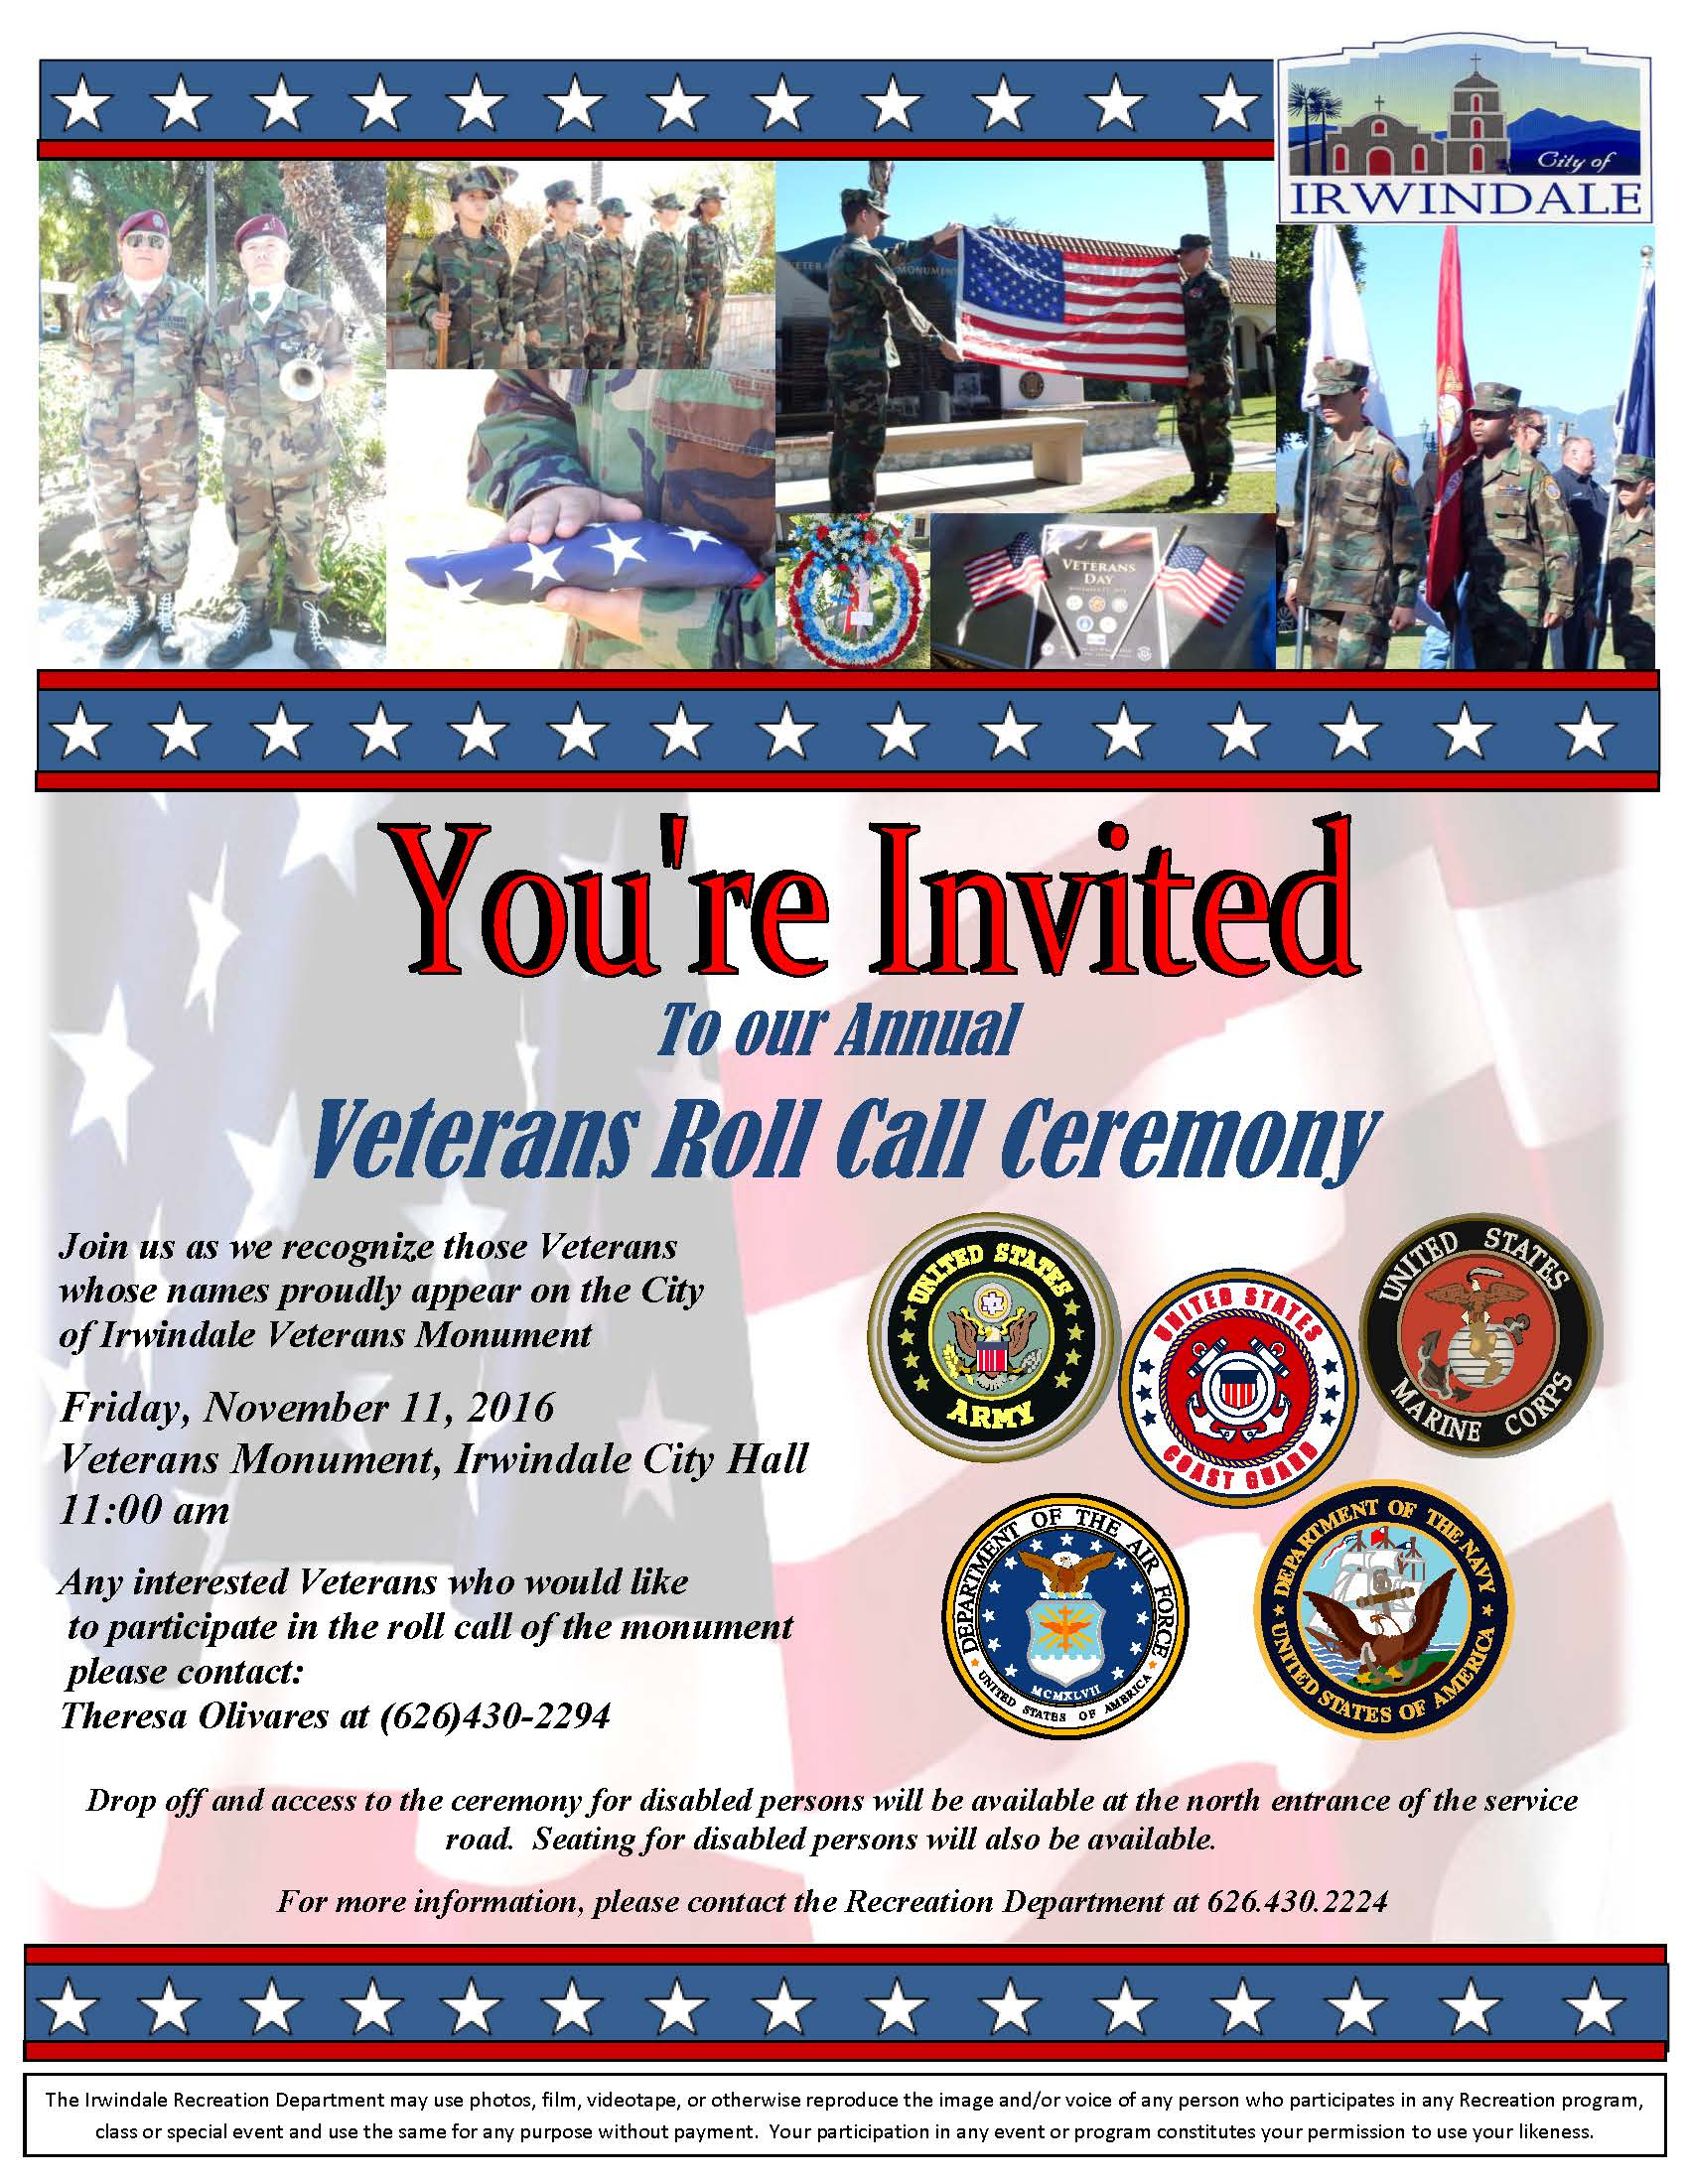 Veterans Memorial info flyer